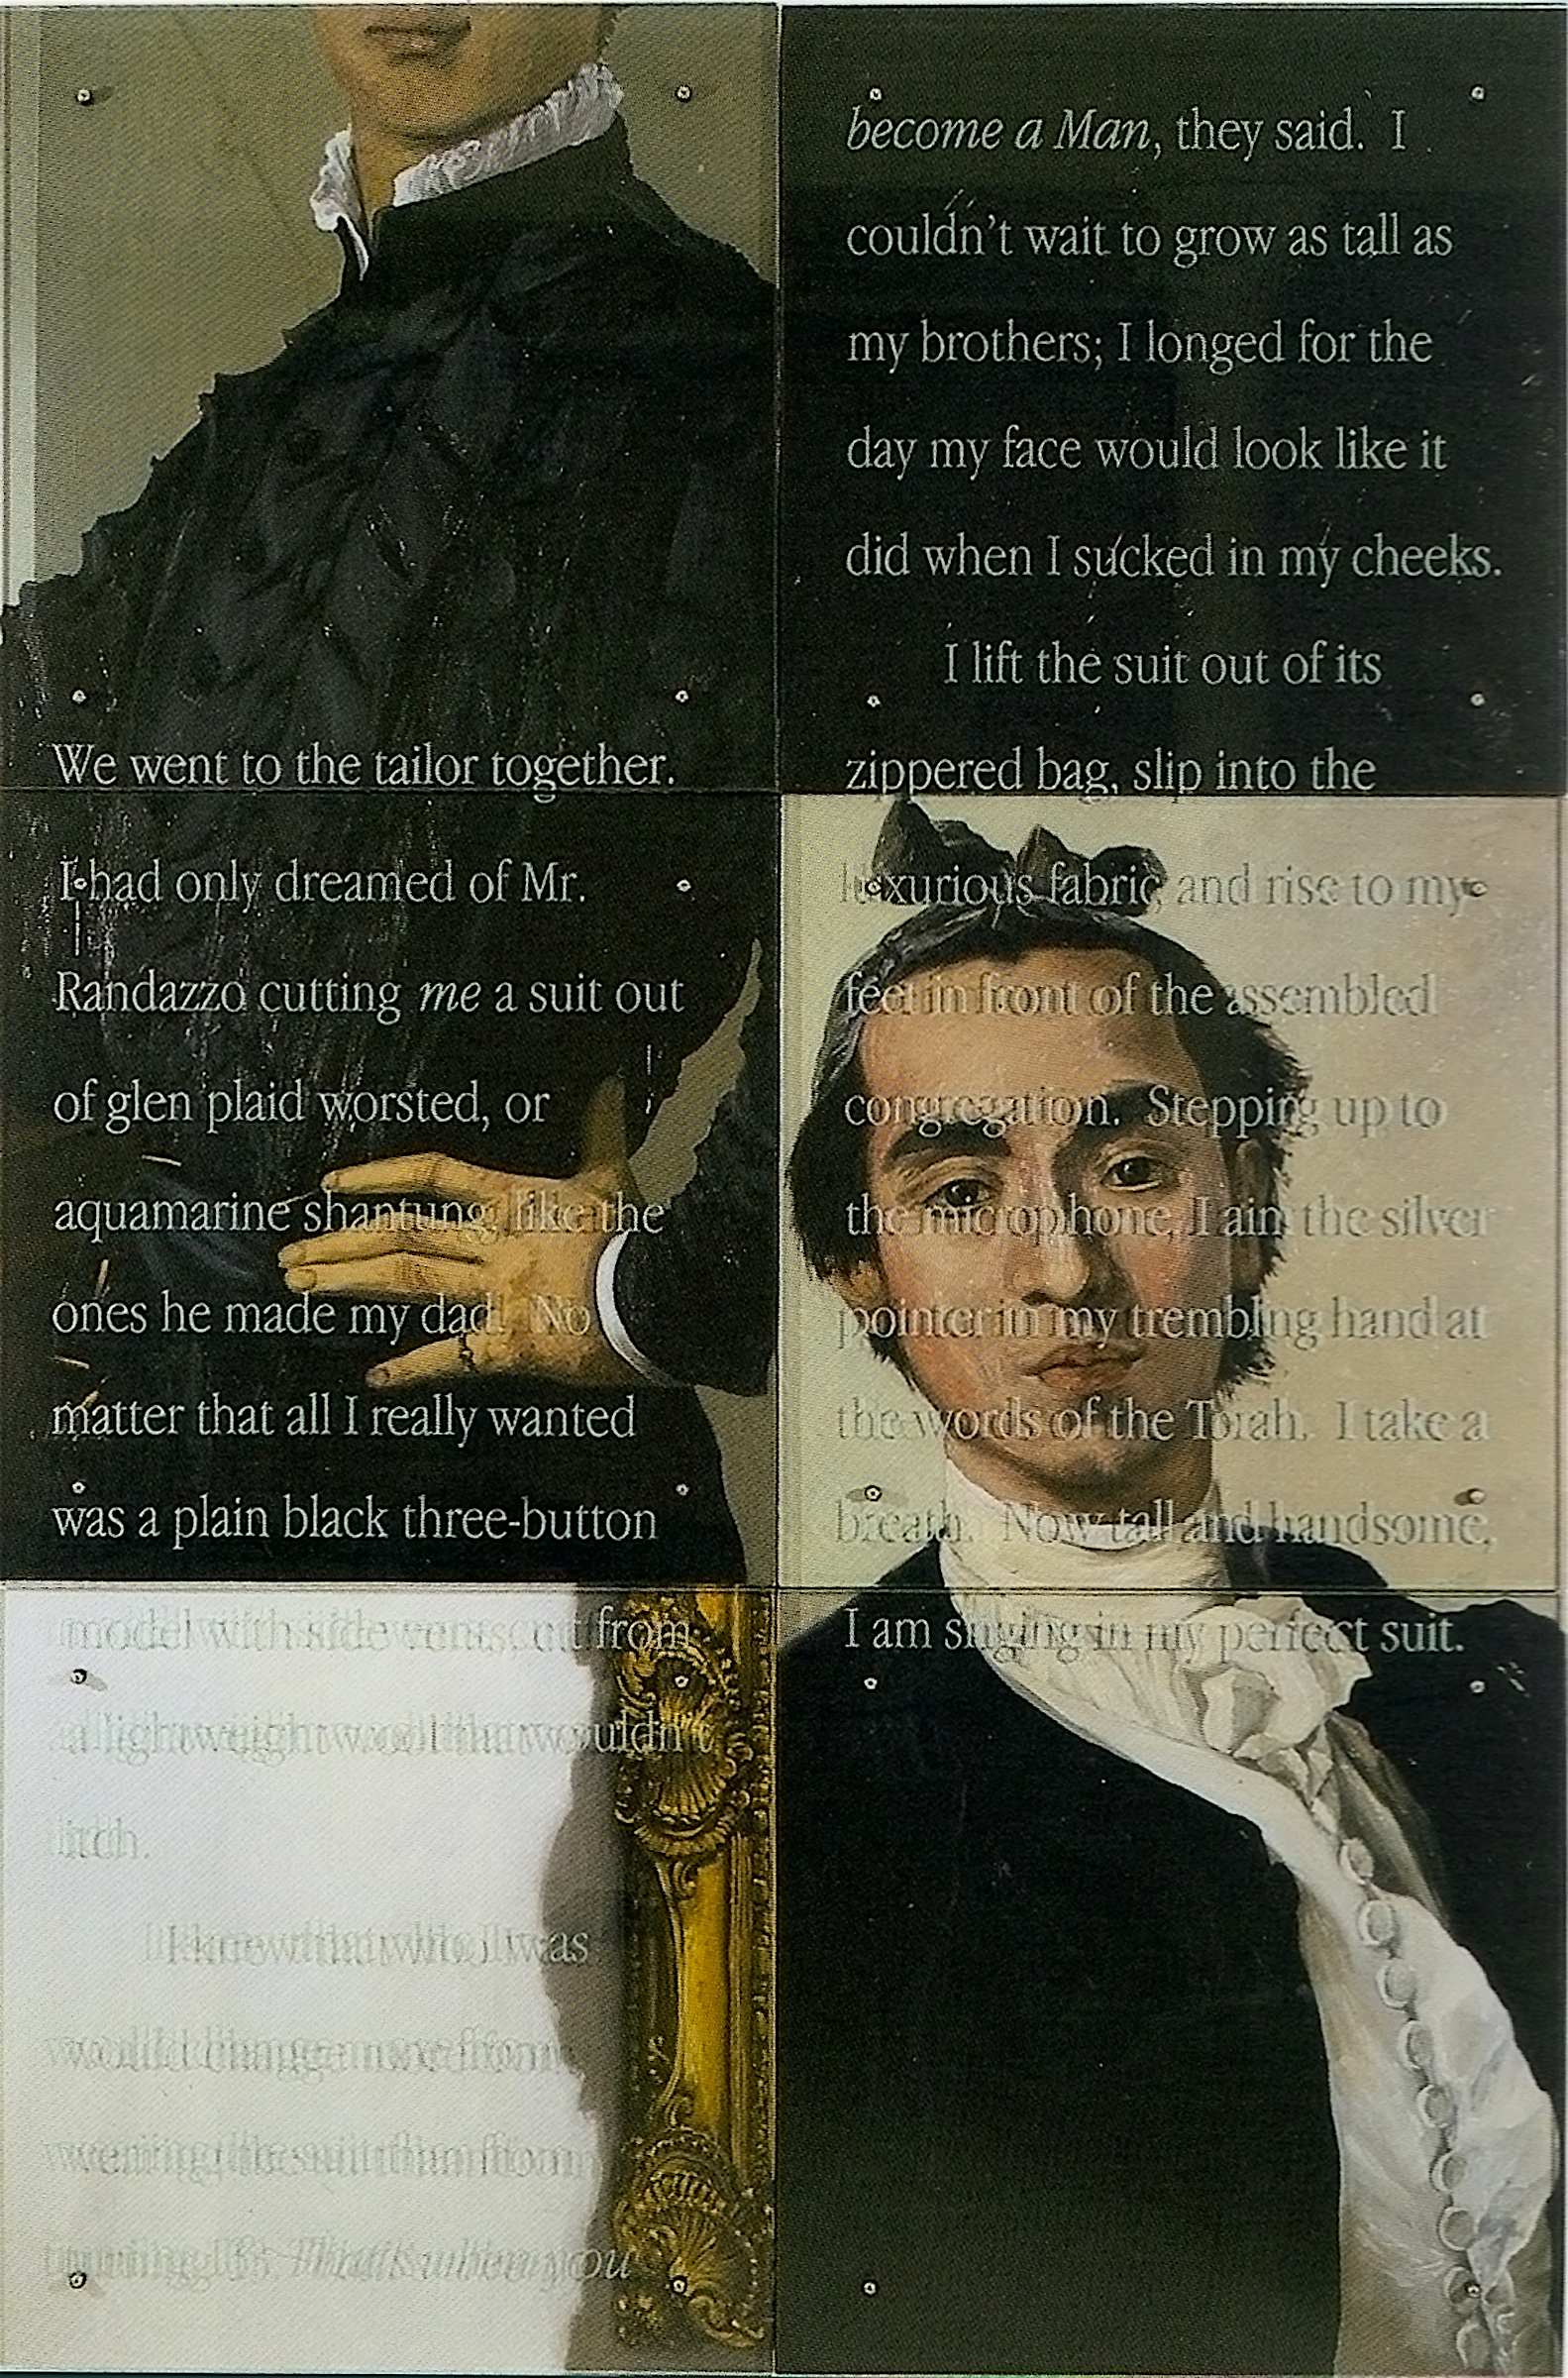 "We went to the tailor together, 1995 60"" x 90"" (153cm x 229.5cm) Six panels, oil on wood, sandblasted glass, bolts After Bronzino (1503-1572), Portrait of a Young Man, and Luis Eugenio Melendez (1716-1780), Portrait of the artist holding a life study TEXT: We went to the tailor together. I had only dreamed of Mr. Randazzo cutting me a suit out of glen plaid worsted, or aquamarine shantung, like the ones he made my dad. No matter that all I really wanted was a plain black three-button model with side vents, cut from a lightweight wool that wouldn't itch. I knew that who I was would change more from wearing the suit than from turning 13. That's when you become a Man, they said. I couldn't wait to grow as tall as my brothers; I longed for the day my face would look like it did when I sucked in my cheeks. I lift the suit out of its zippered bag, slip into the luxurious fabric, and rise to my feet in front of the assembled congregation. Stepping up to the microphone, I aim the silver pointer in my trembling hand at the words of the Torah. I take a breath. Now tall and handsome, I am singing in my perfect suit."